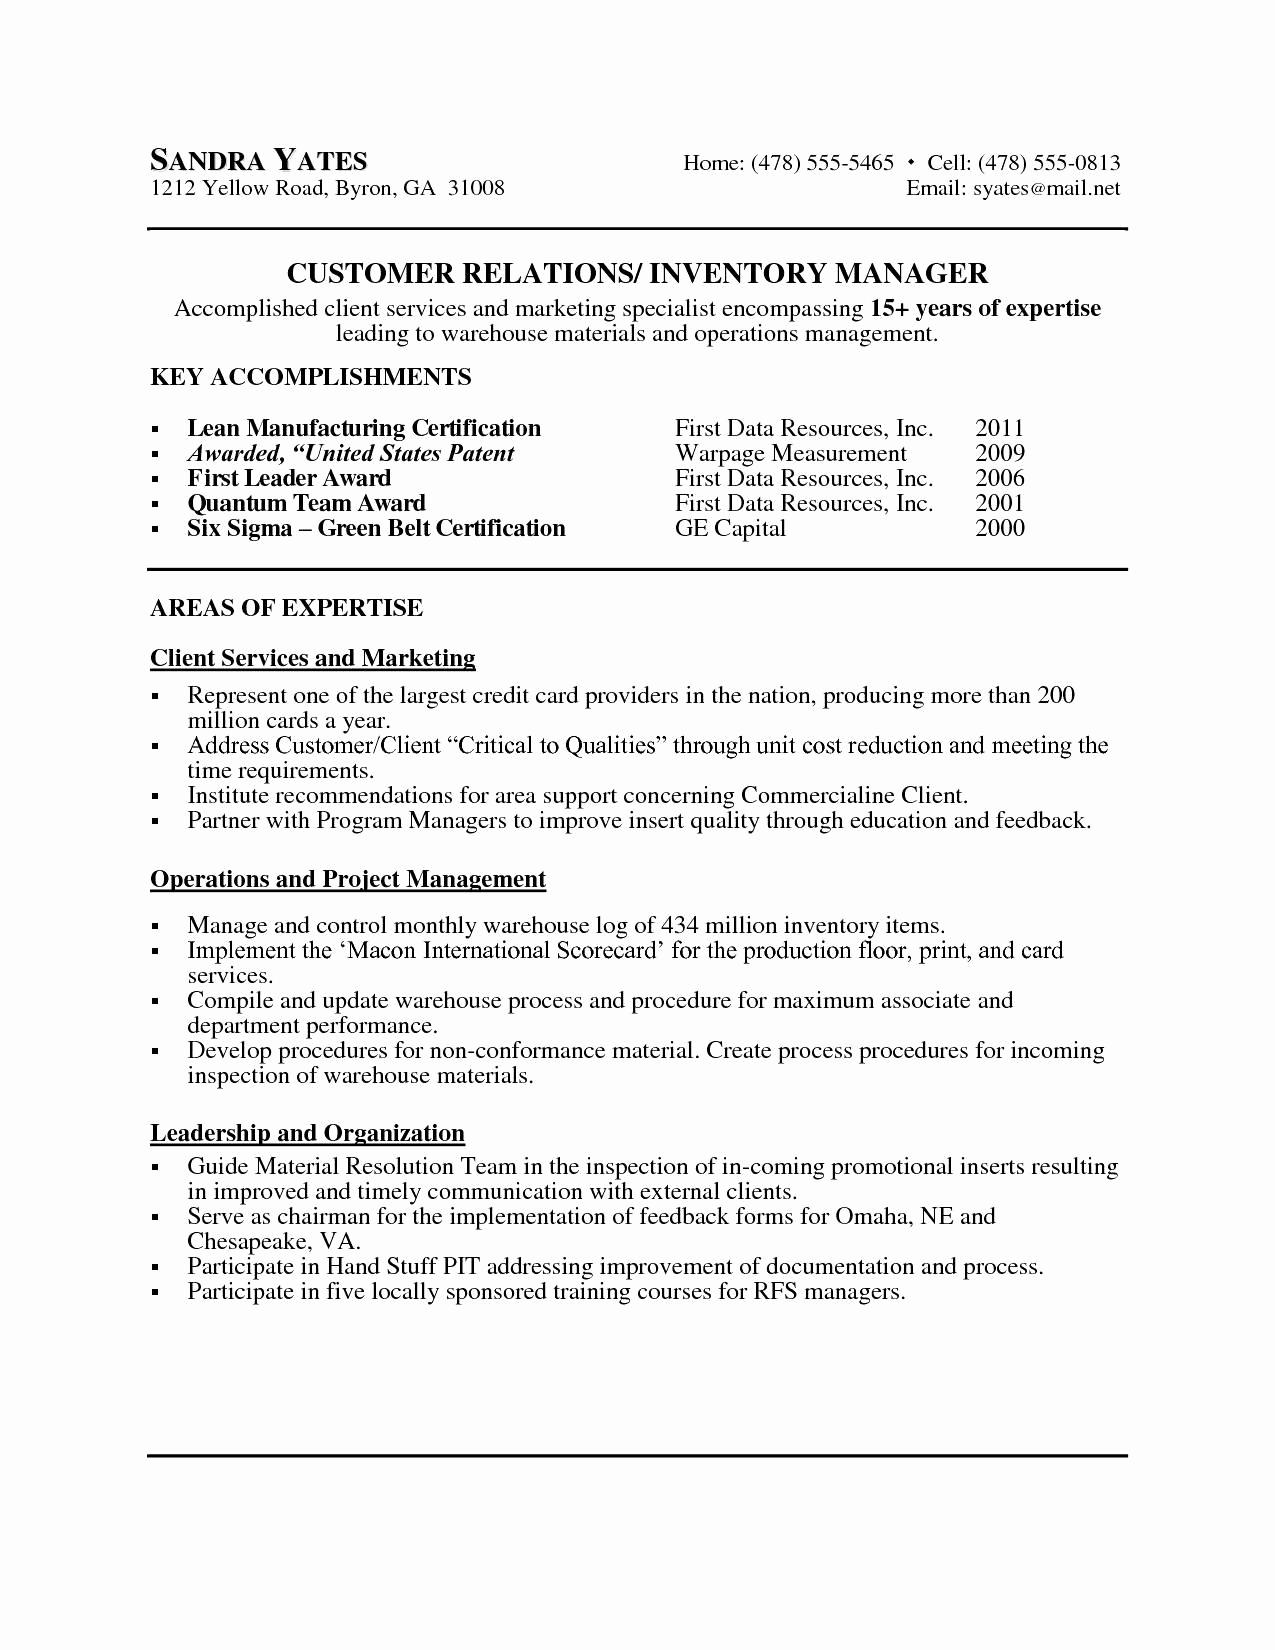 Honors and Awards Resume - Resume Template Best Ressume Template Lovely Type Resume